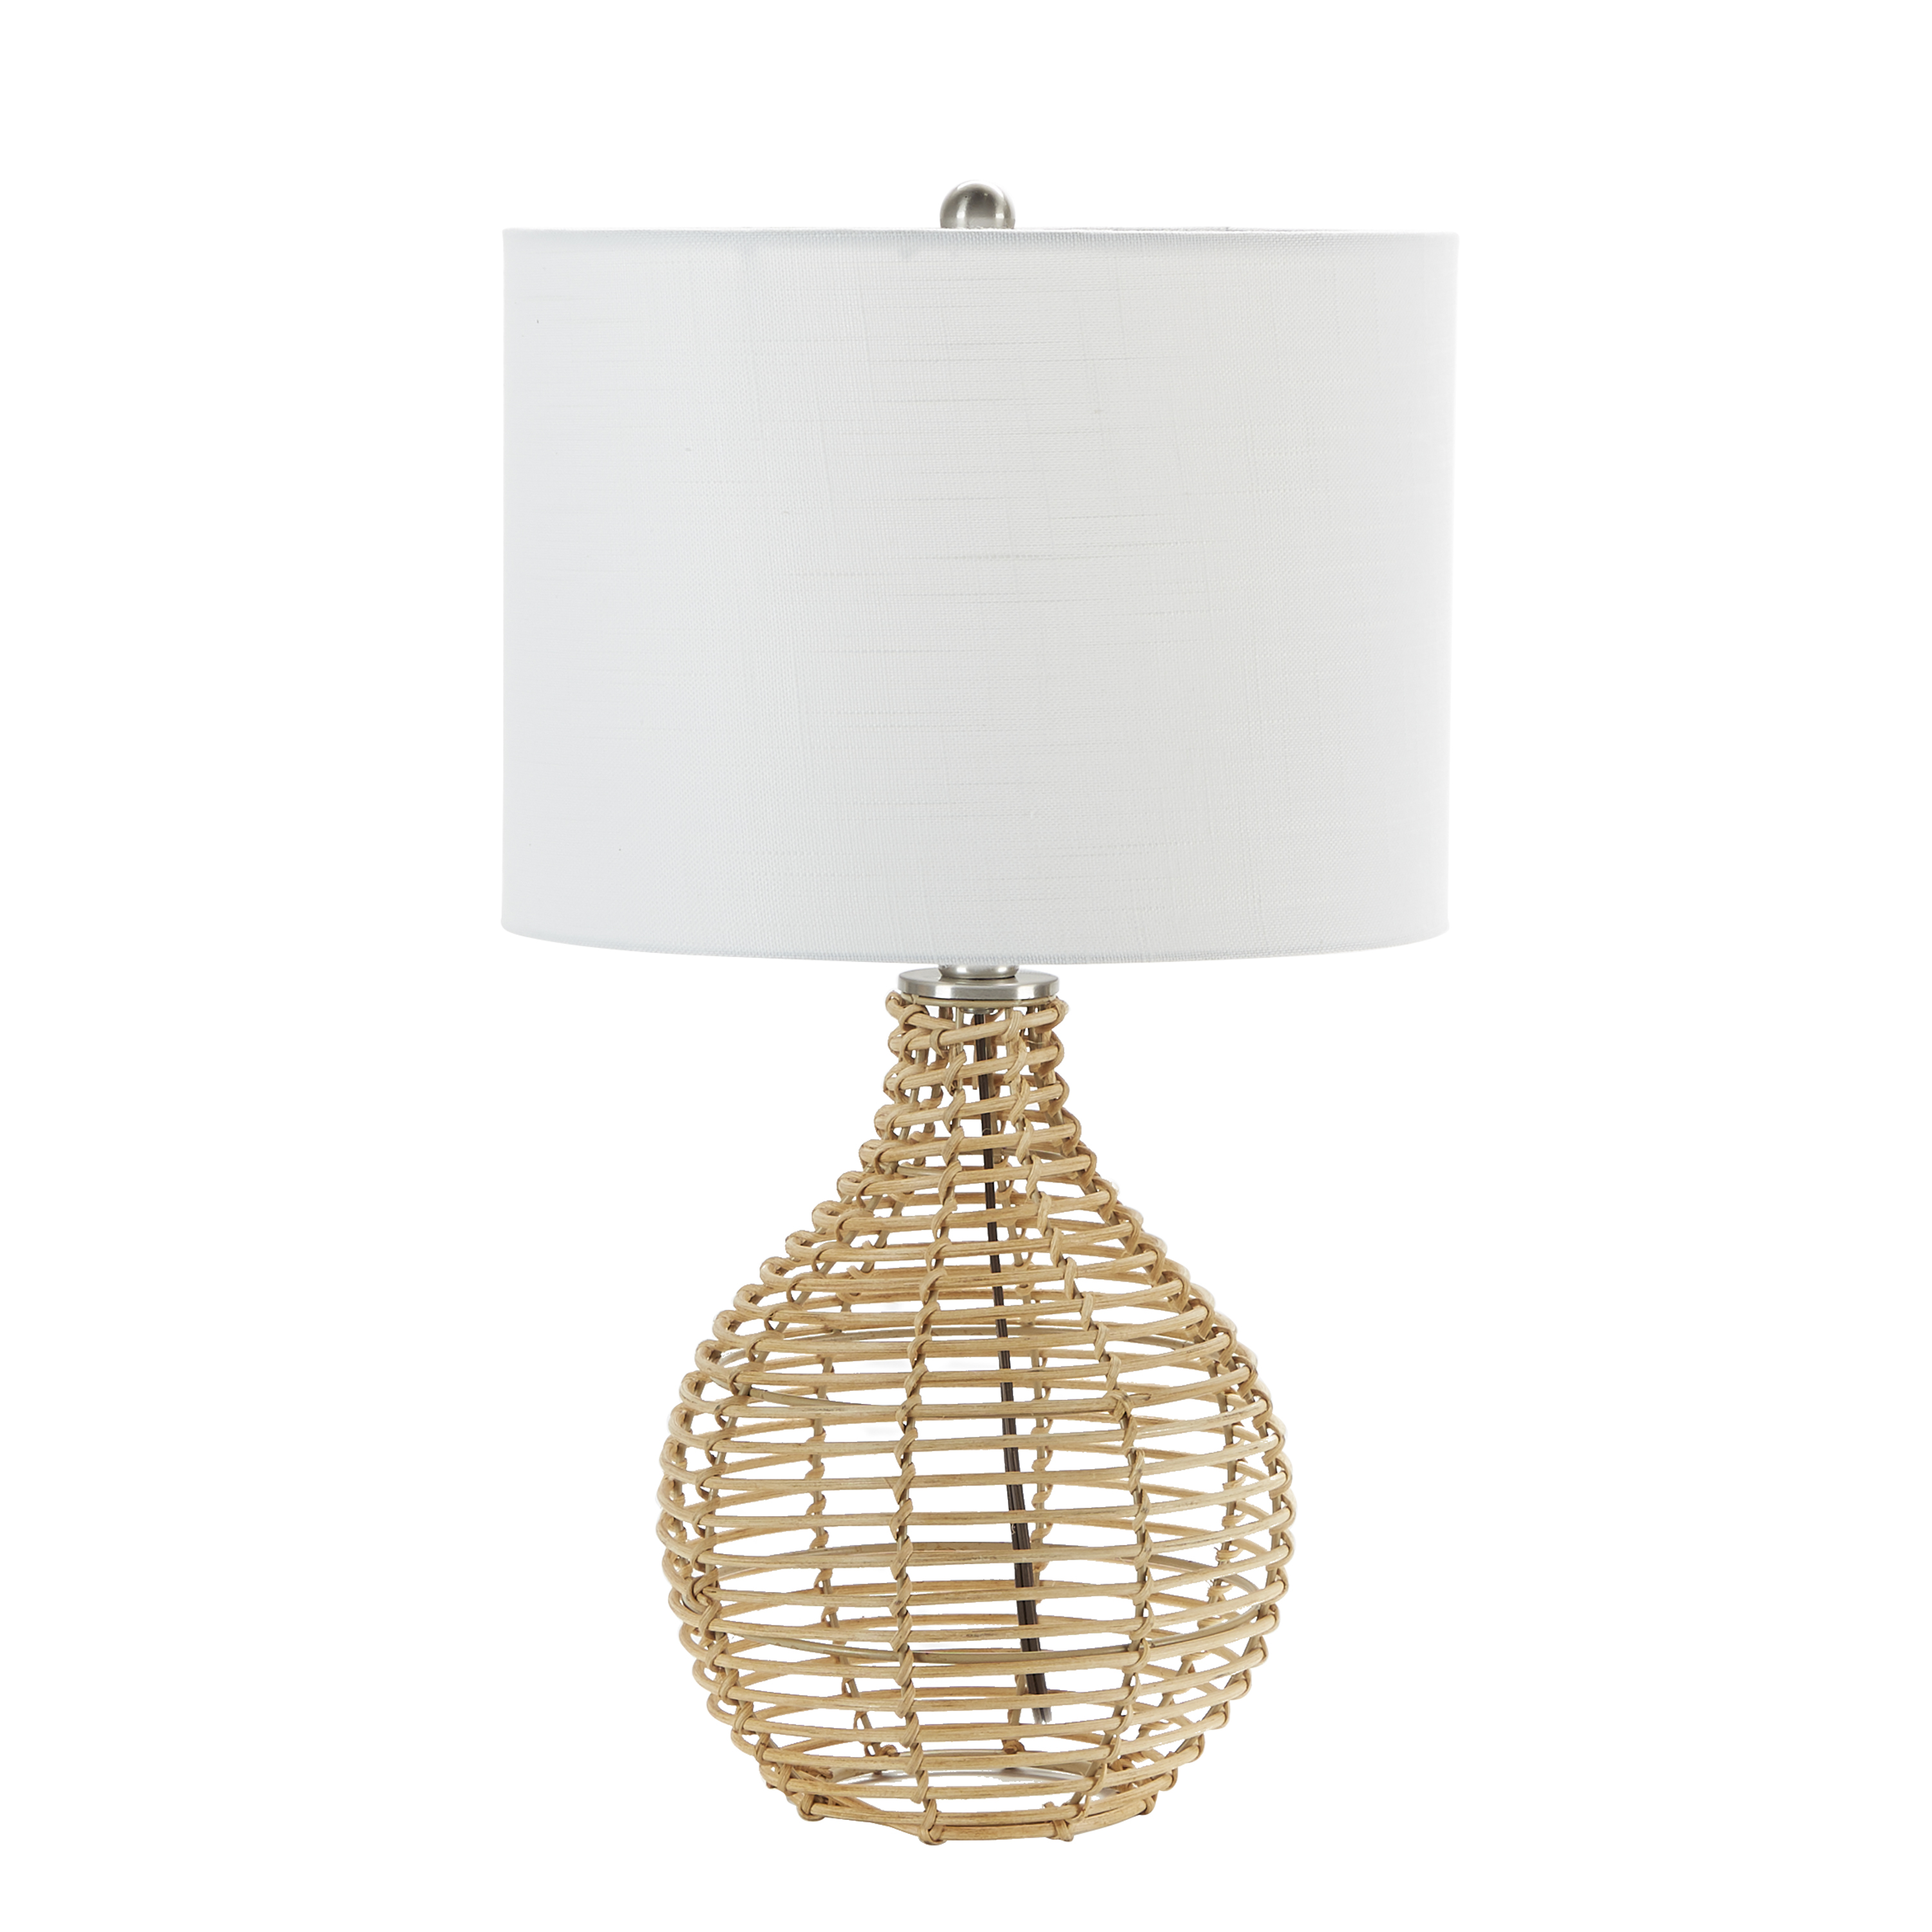 Rattan Jug Style Table Lamp with White Drum Shade